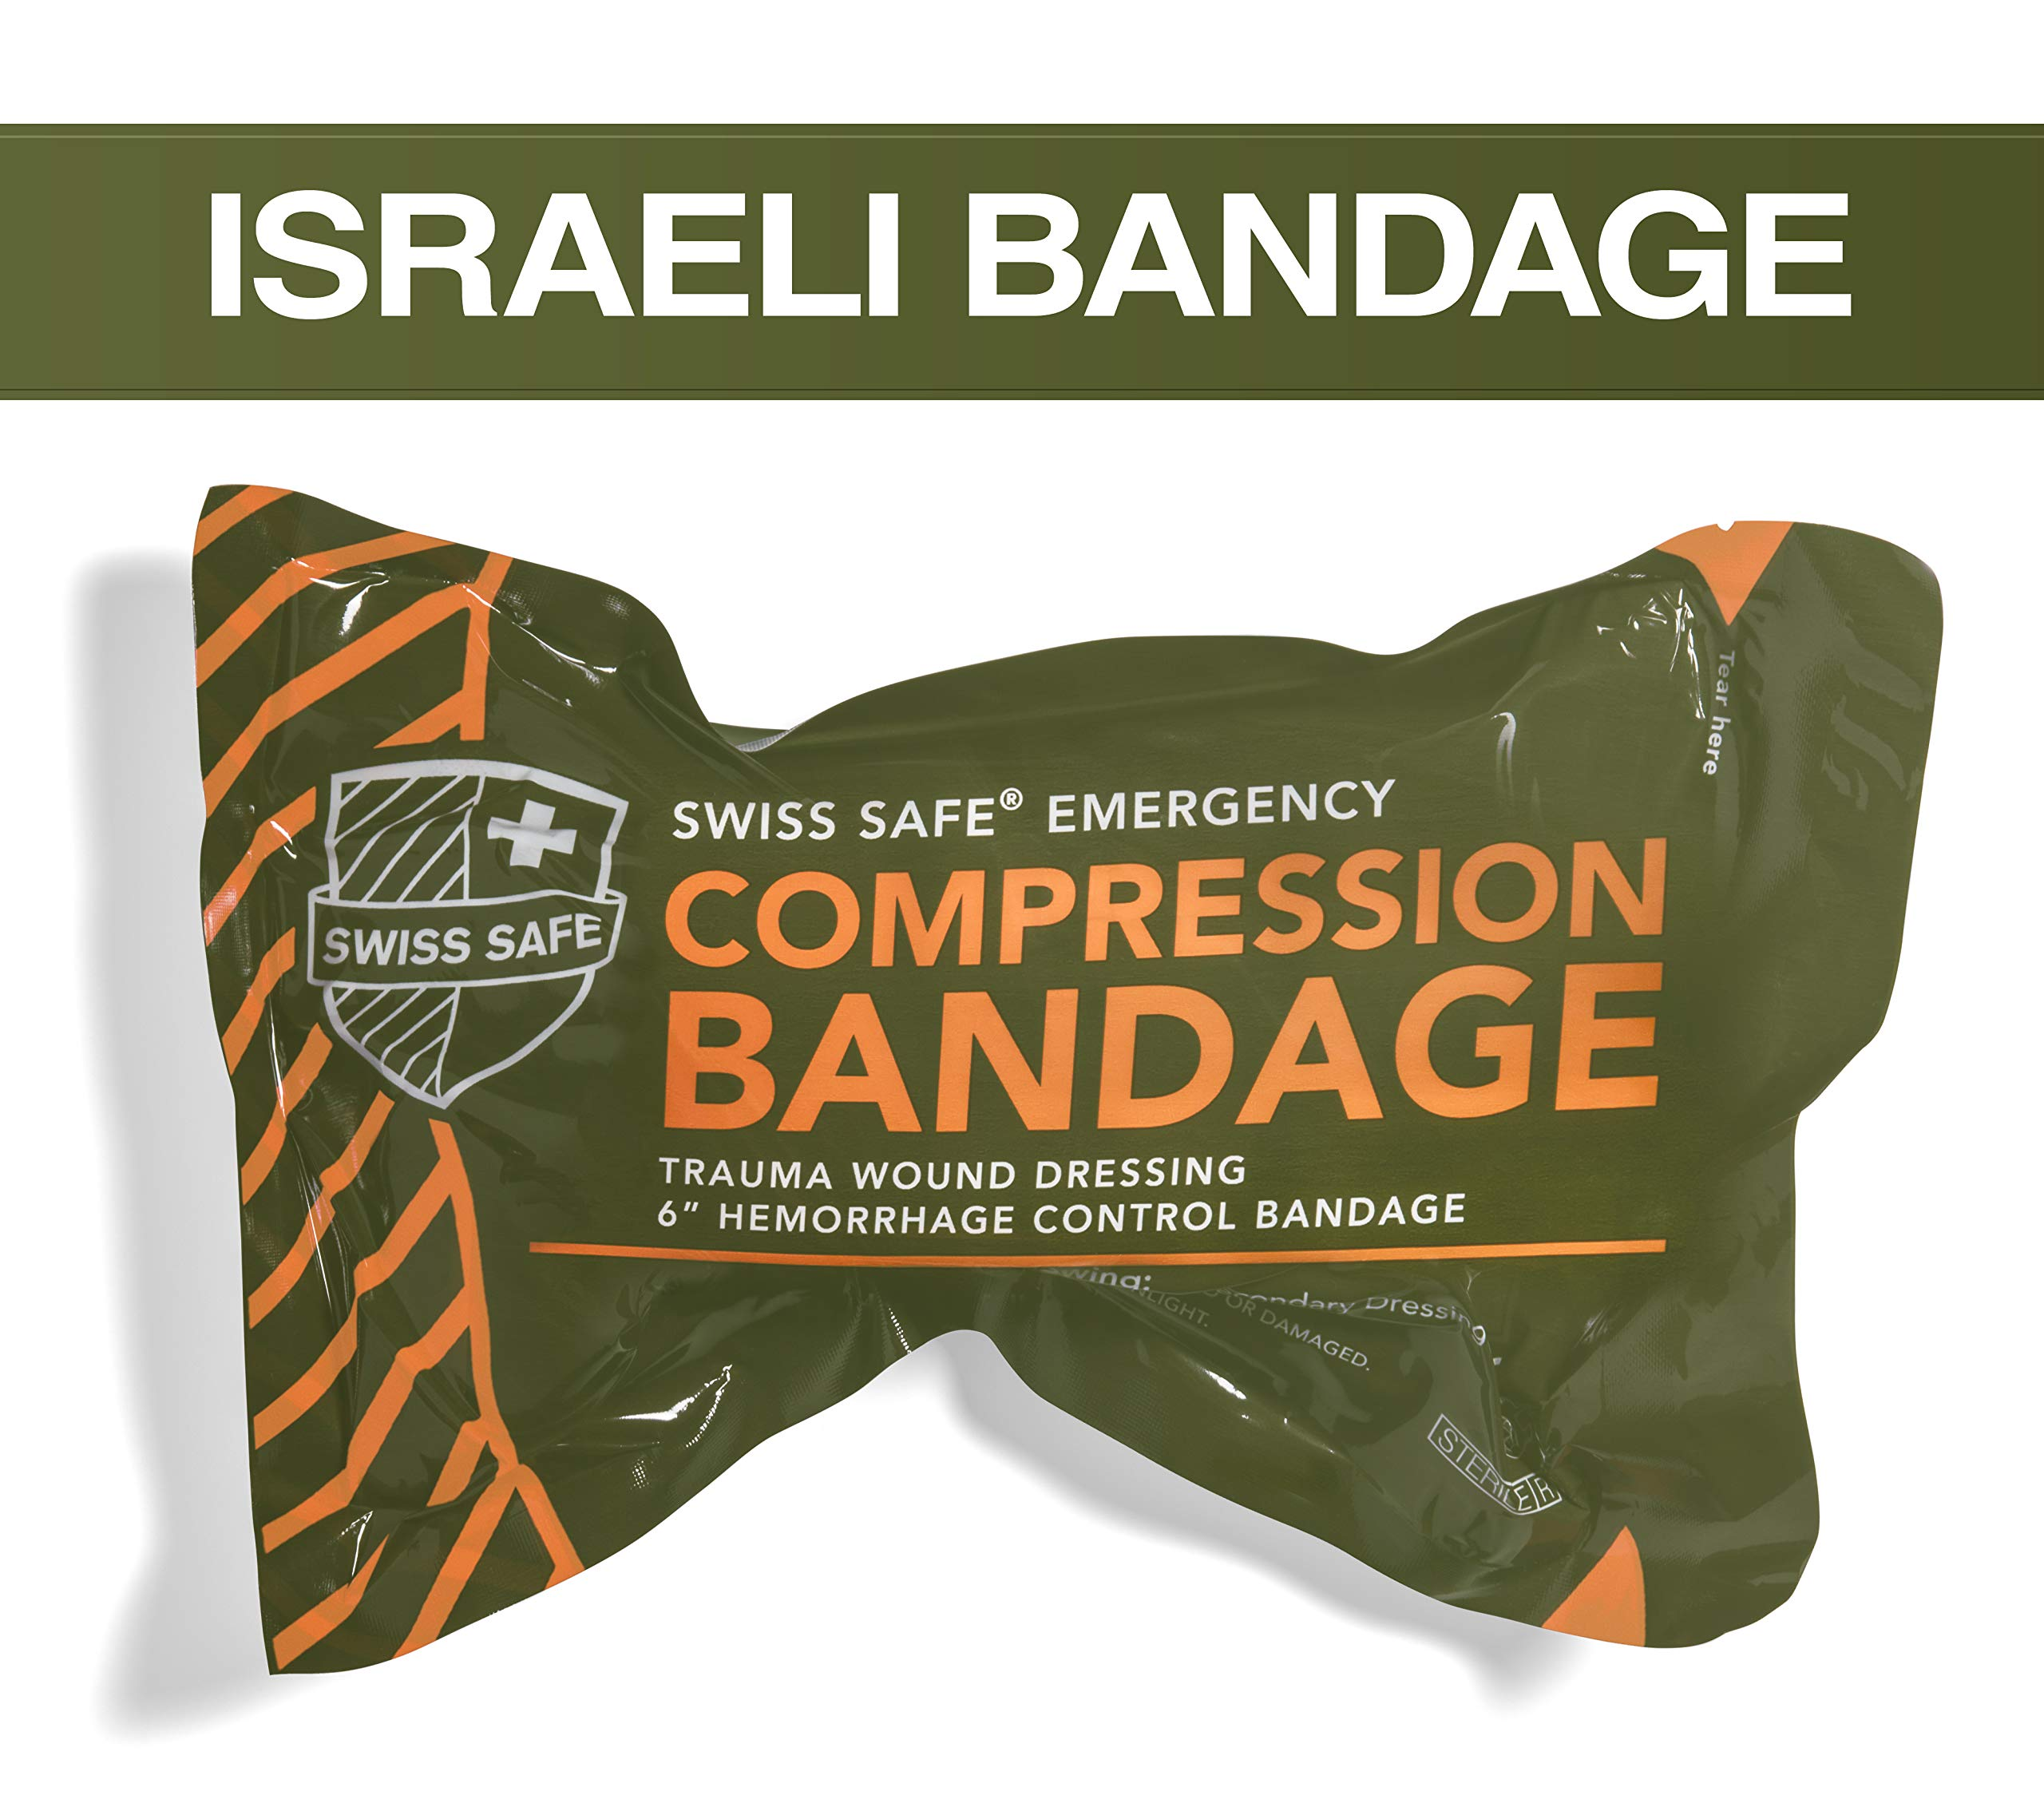 Israeli 6'' Compression Bandage [STERILE]: Authentic Compact Design for Emergency Wound Dressing, First Aid and Trauma Kit